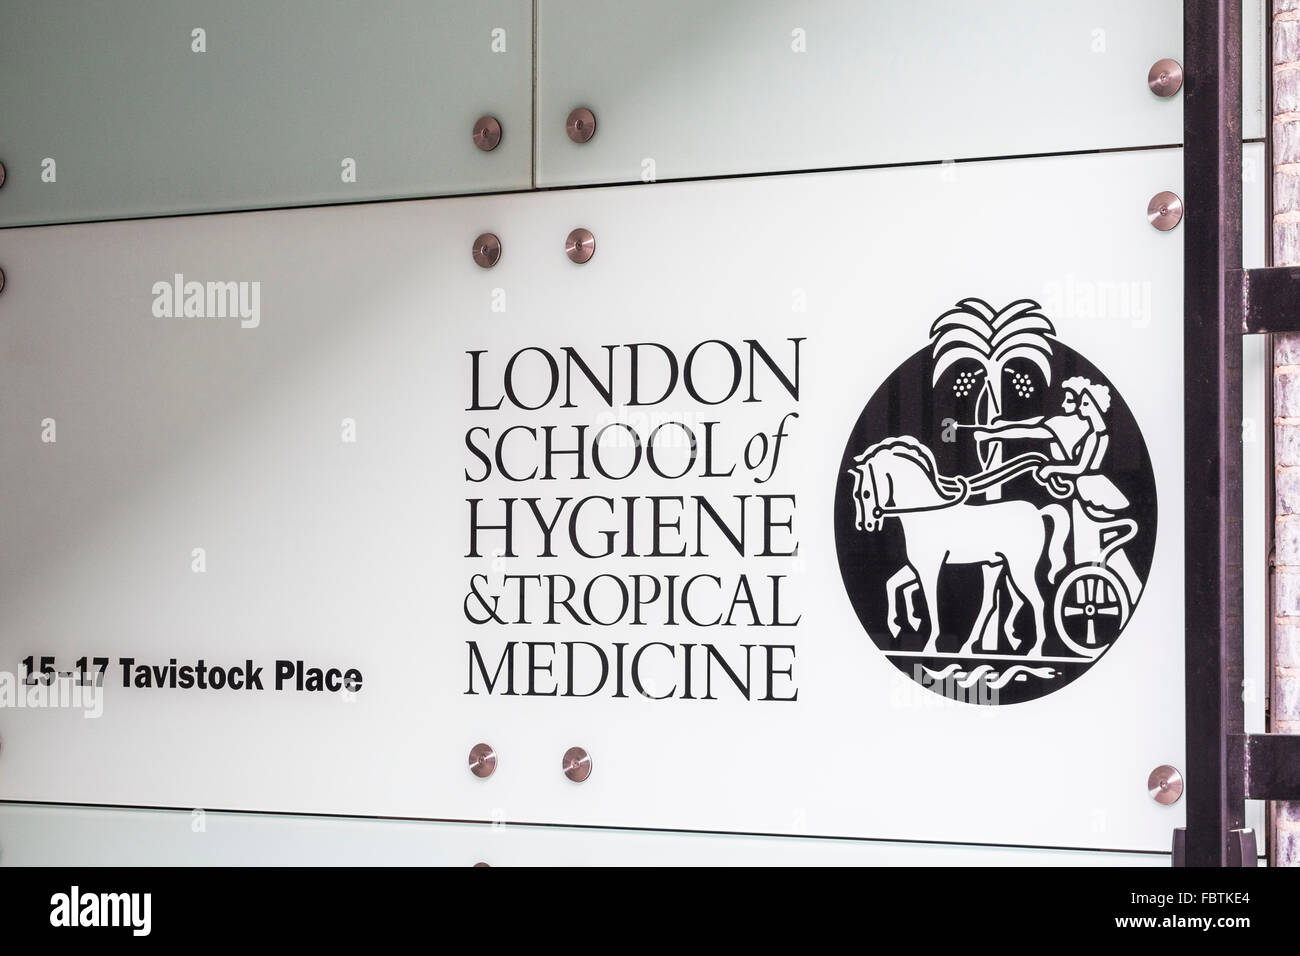 London School of Hygiene & Tropical medicine name sign, London, England, U.K. Stock Photo